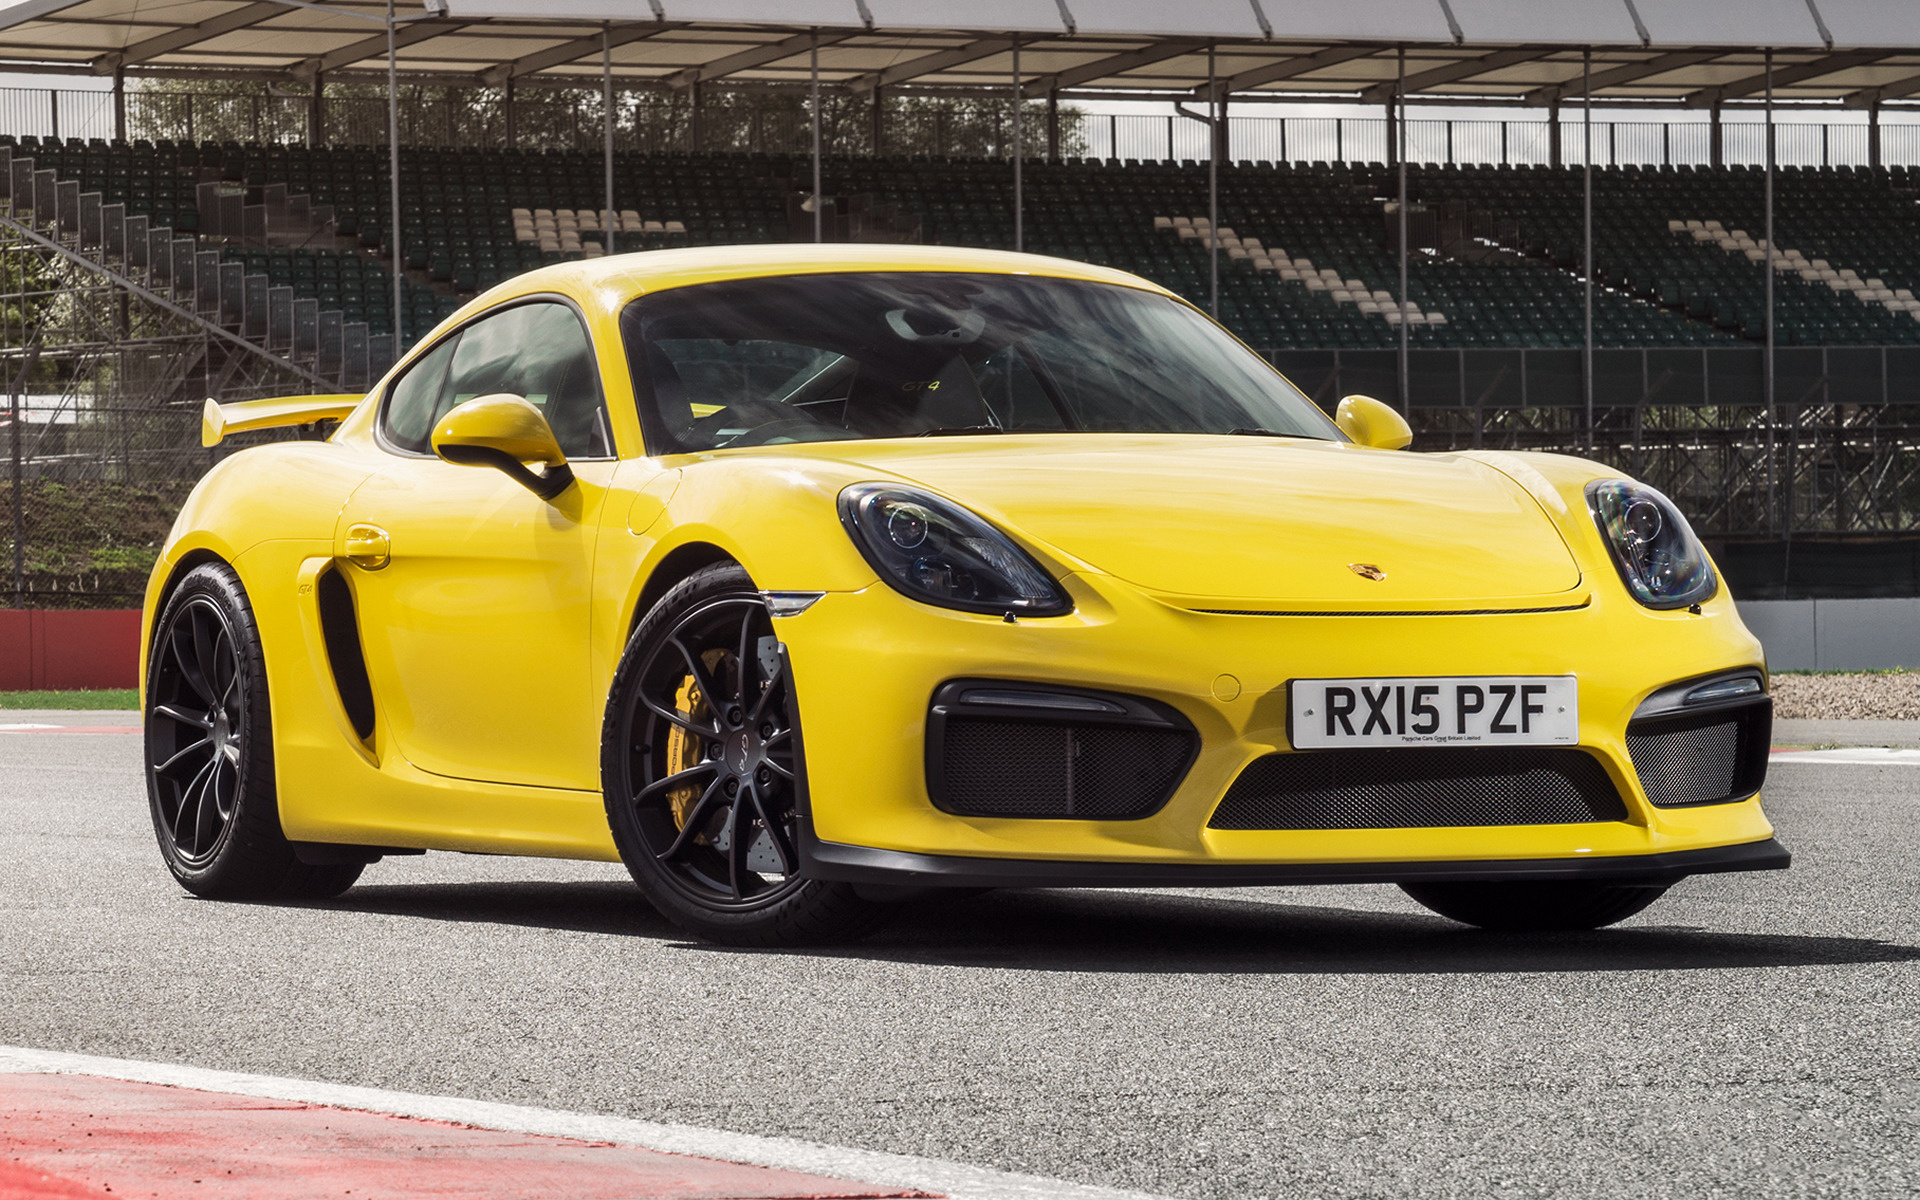 Cayman Gt4 Wall Paper: Porsche Cayman GT4 (2015) UK Wallpapers And HD Images